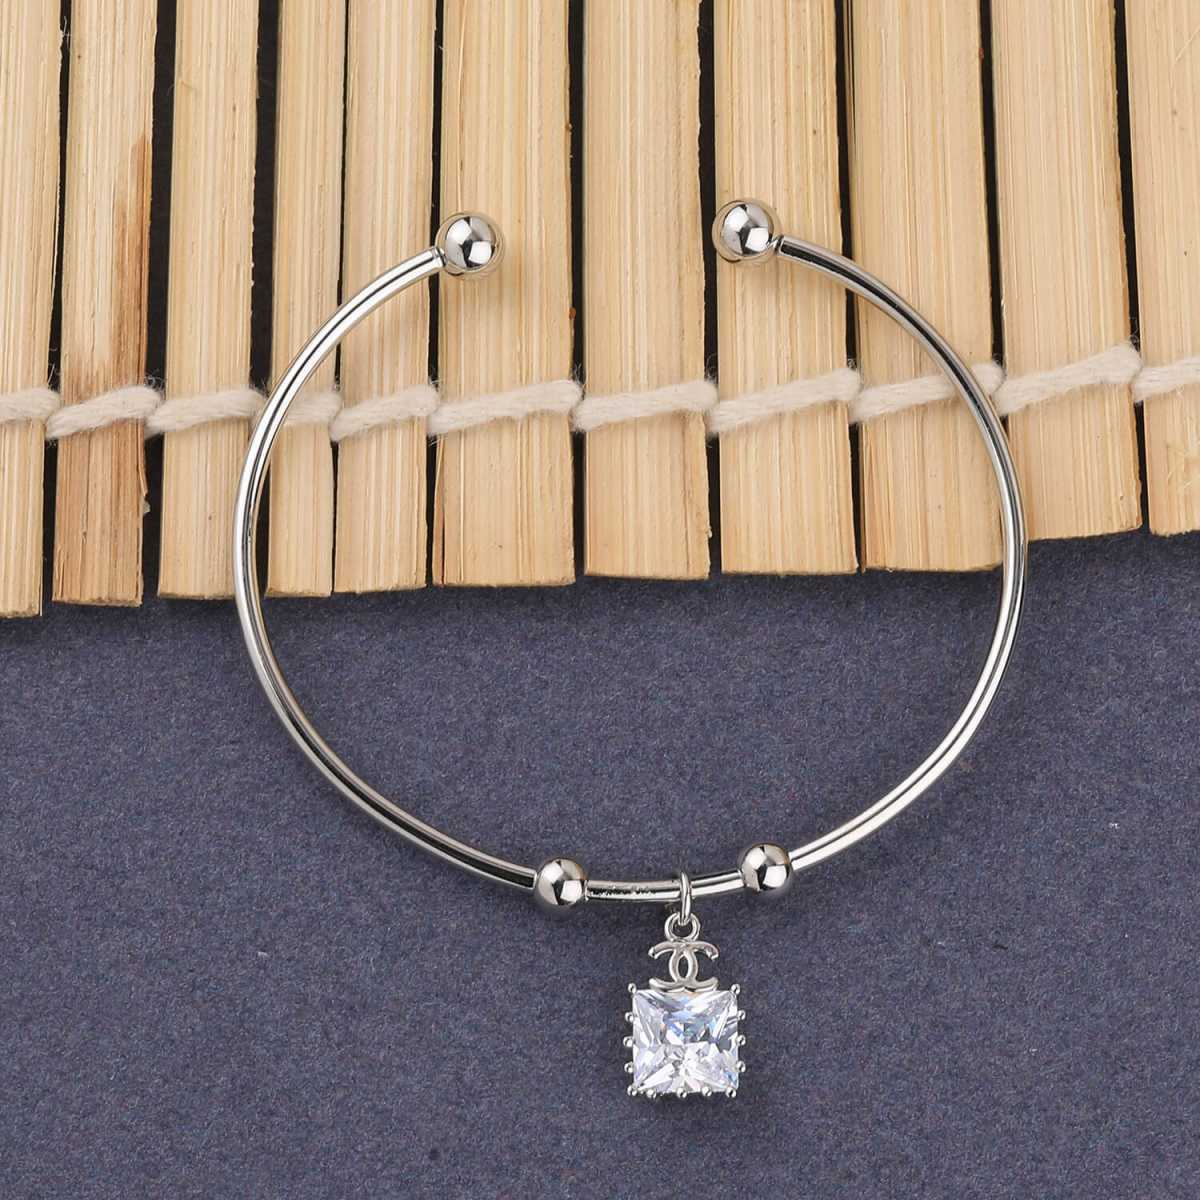 SILVER SHINE Stylish Look Party Wear Adjustable Bracelet With Diamond For Women Girls